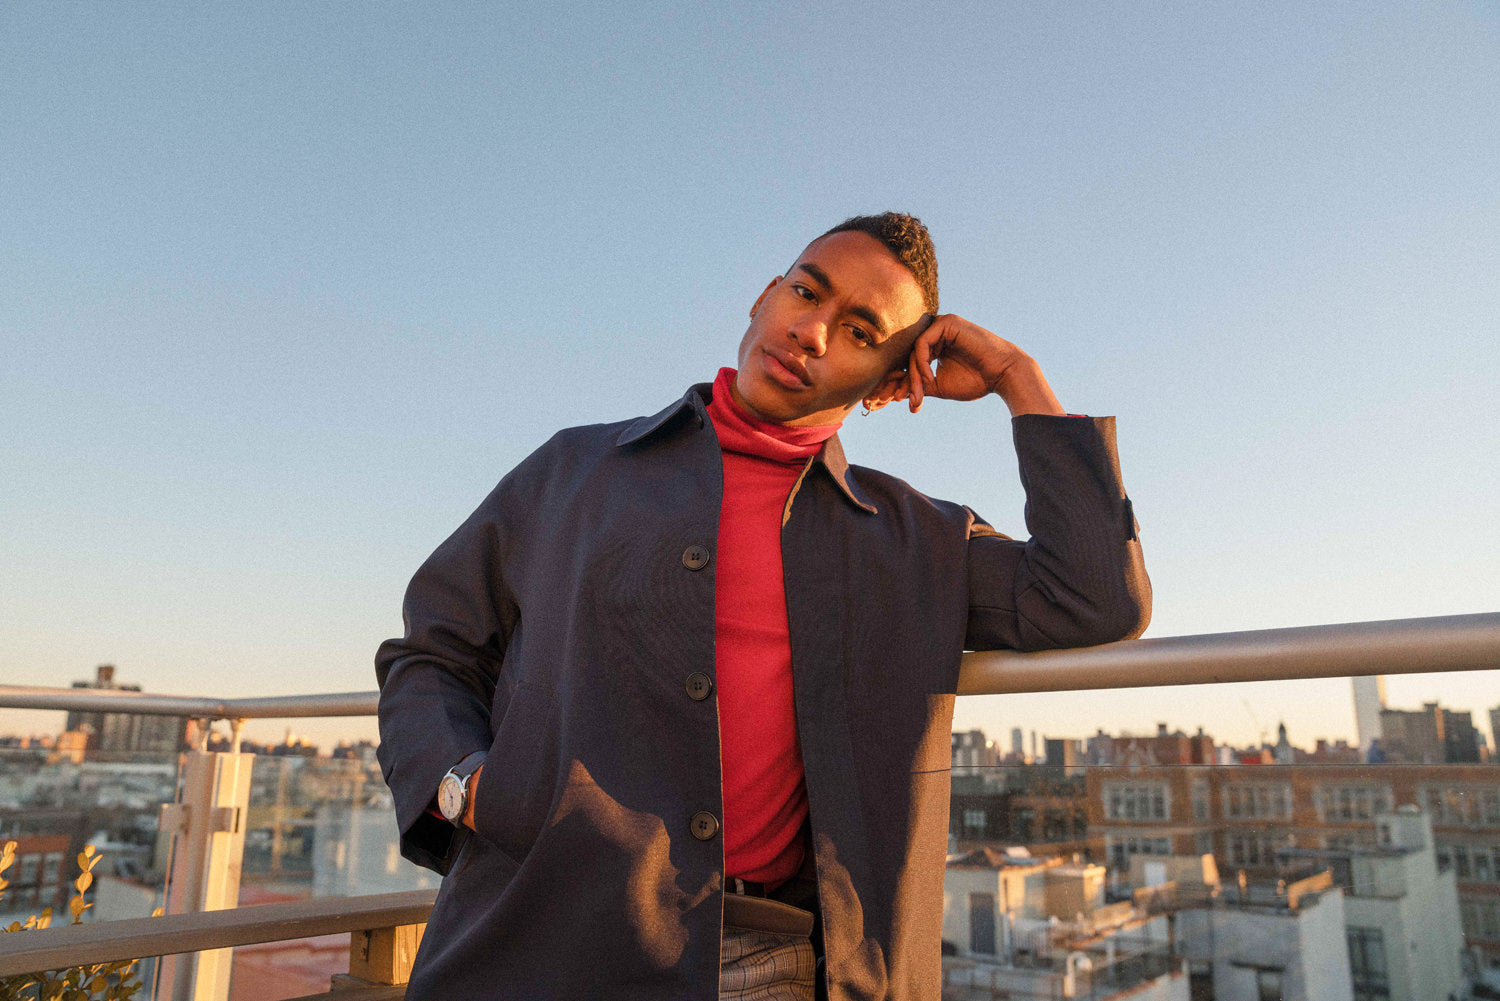 DAEM Spring'19 Lookbook - Man in blue coat on rooftop